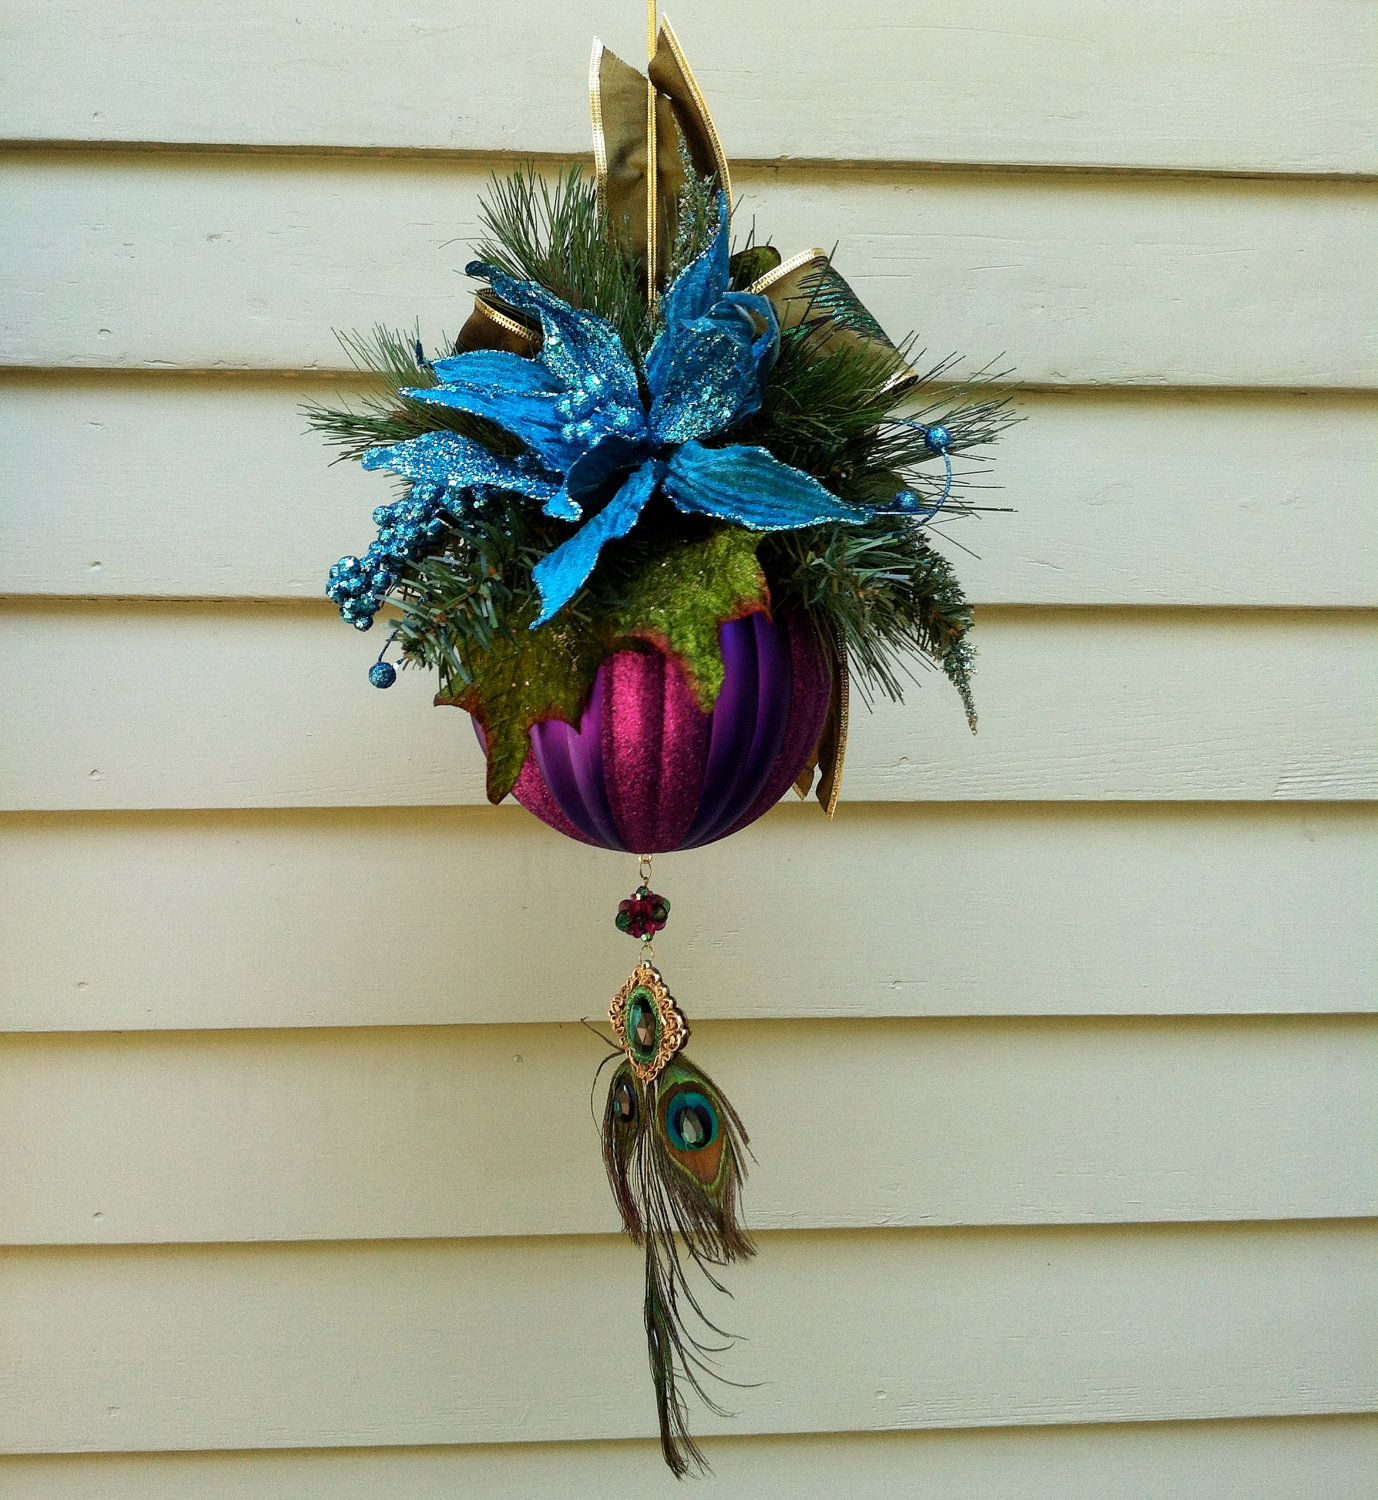 Christmas Ornament, Purple Striped Ball, Peacock Feather Bow, Large Glittered